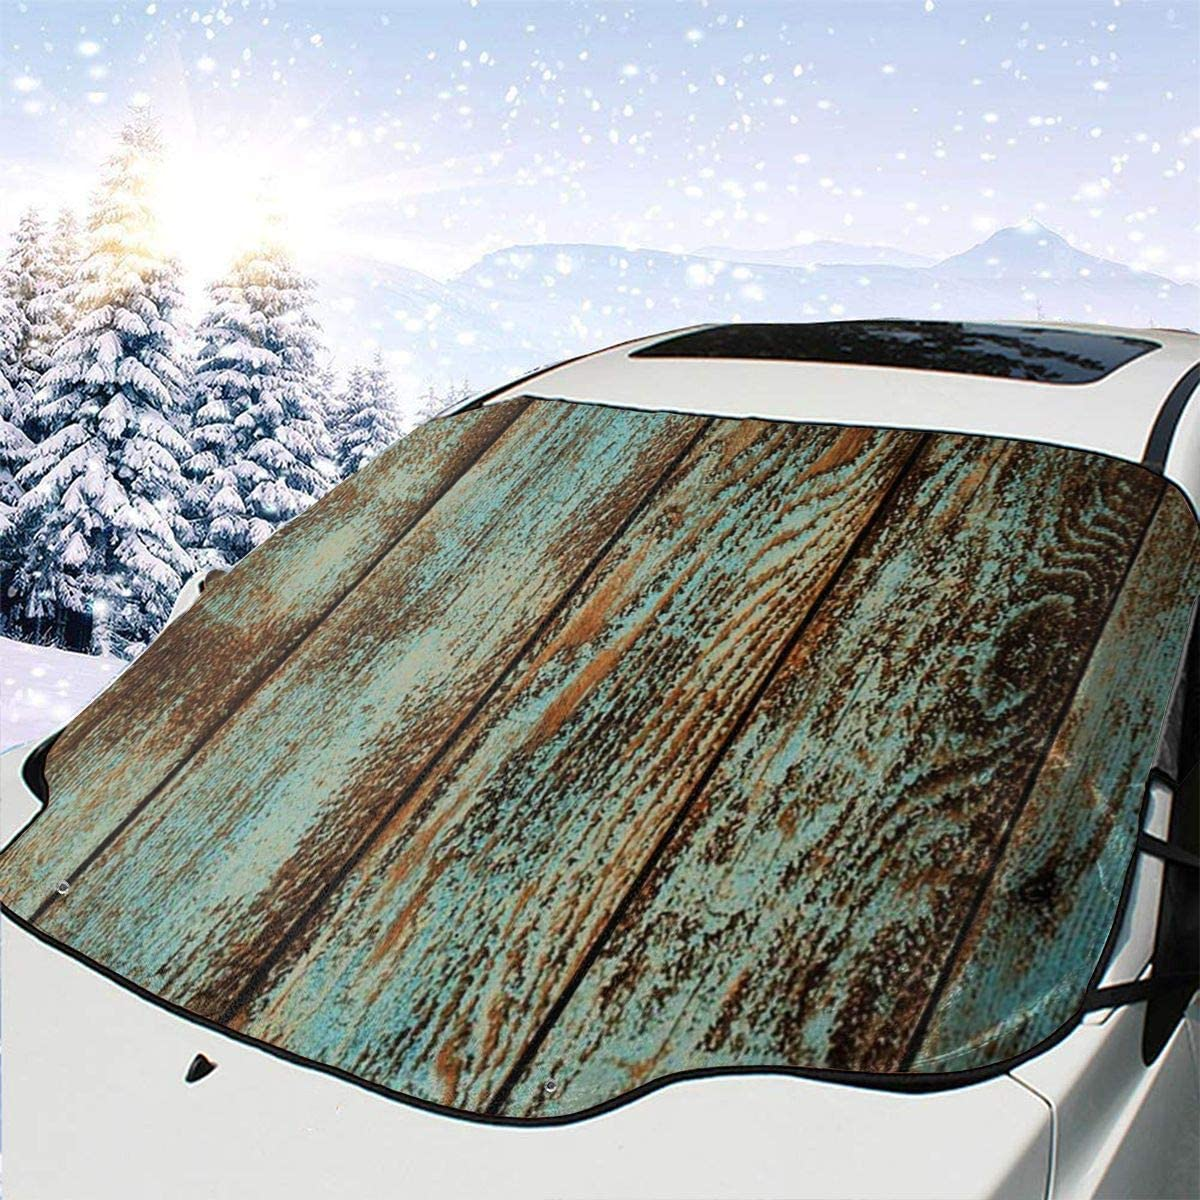 THONFIRE Car Front Window Windshield Winter Sunshade Textures Wood Cover Windproof Blocks Heat Damage Free Visor Protector Automobile Spring Heatshield